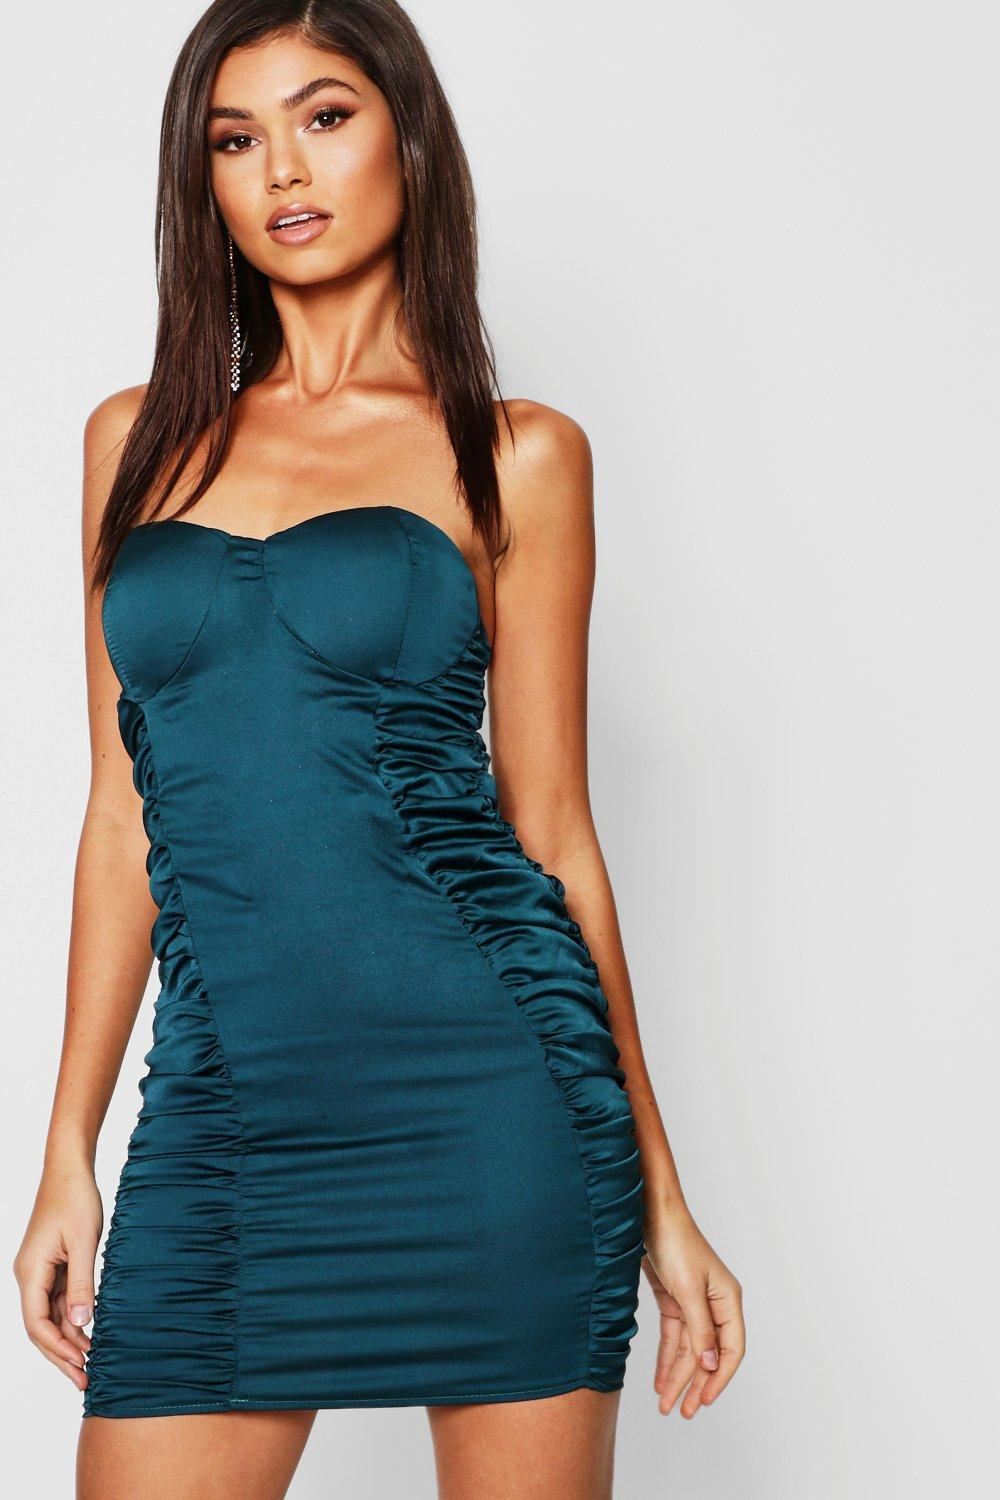 1ec33bf90a57c9 Womens Teal Satin Ruched Bandeau Bodycon Dress. Hover to zoom